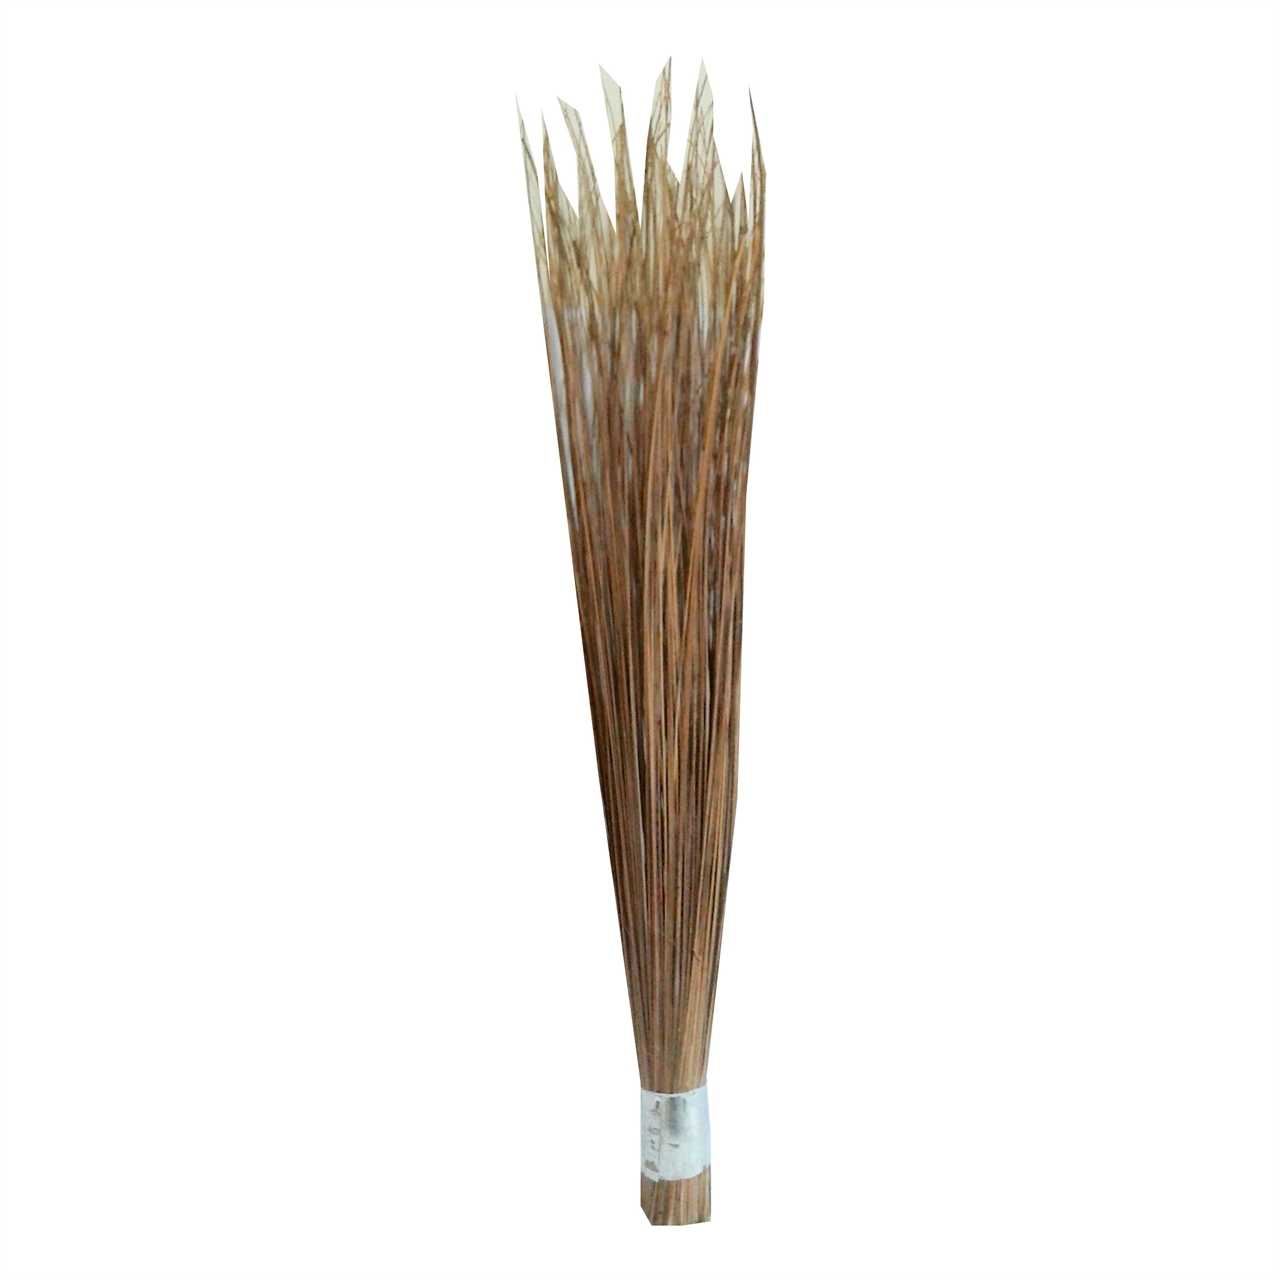 "Big Broom 31"" (Shola) 1 pcs"